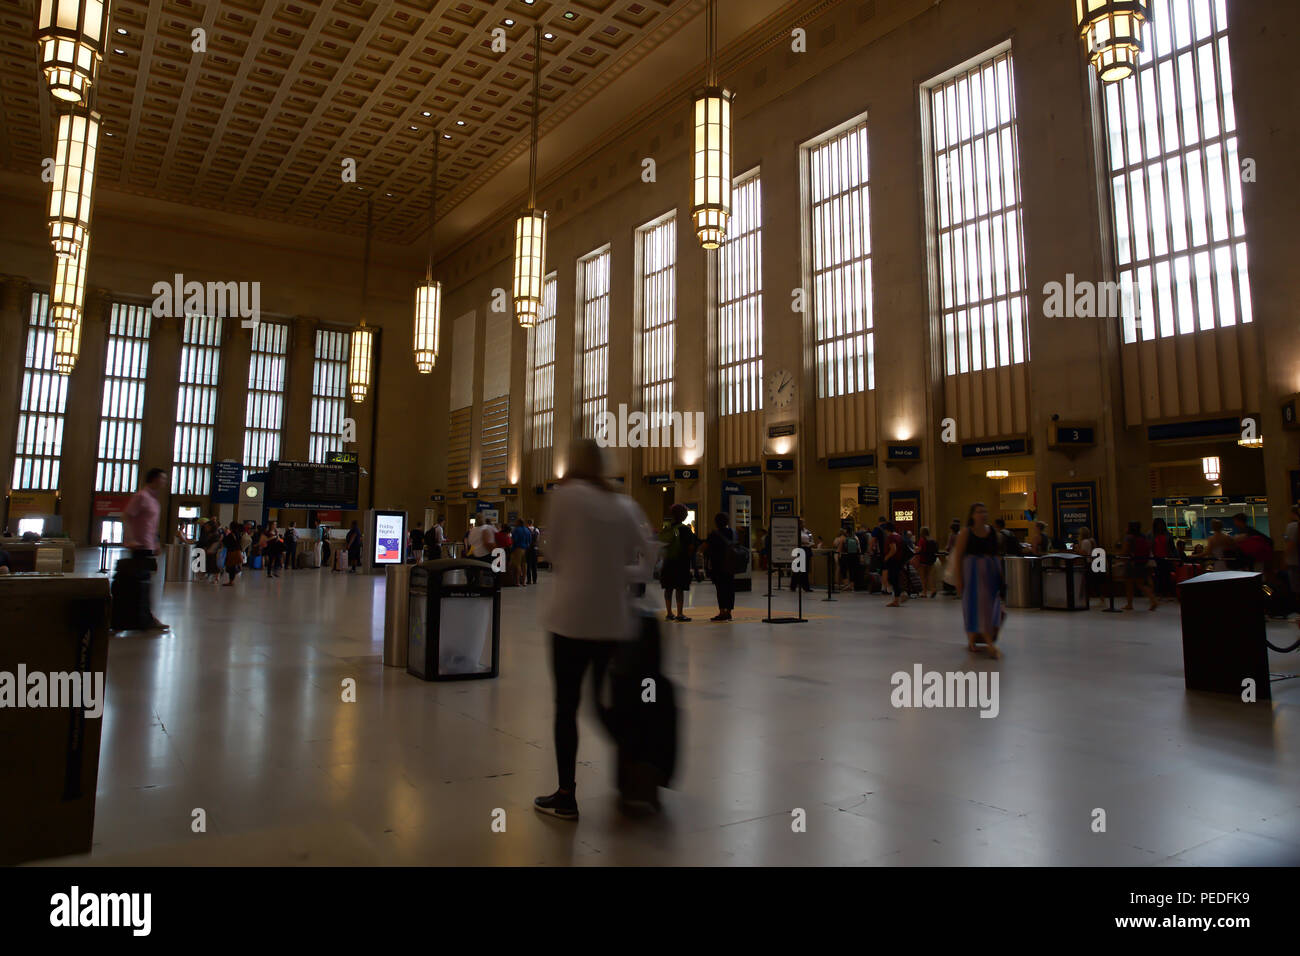 Interior shot of Central Railway Station in Philadelphia, USA - Stock Image